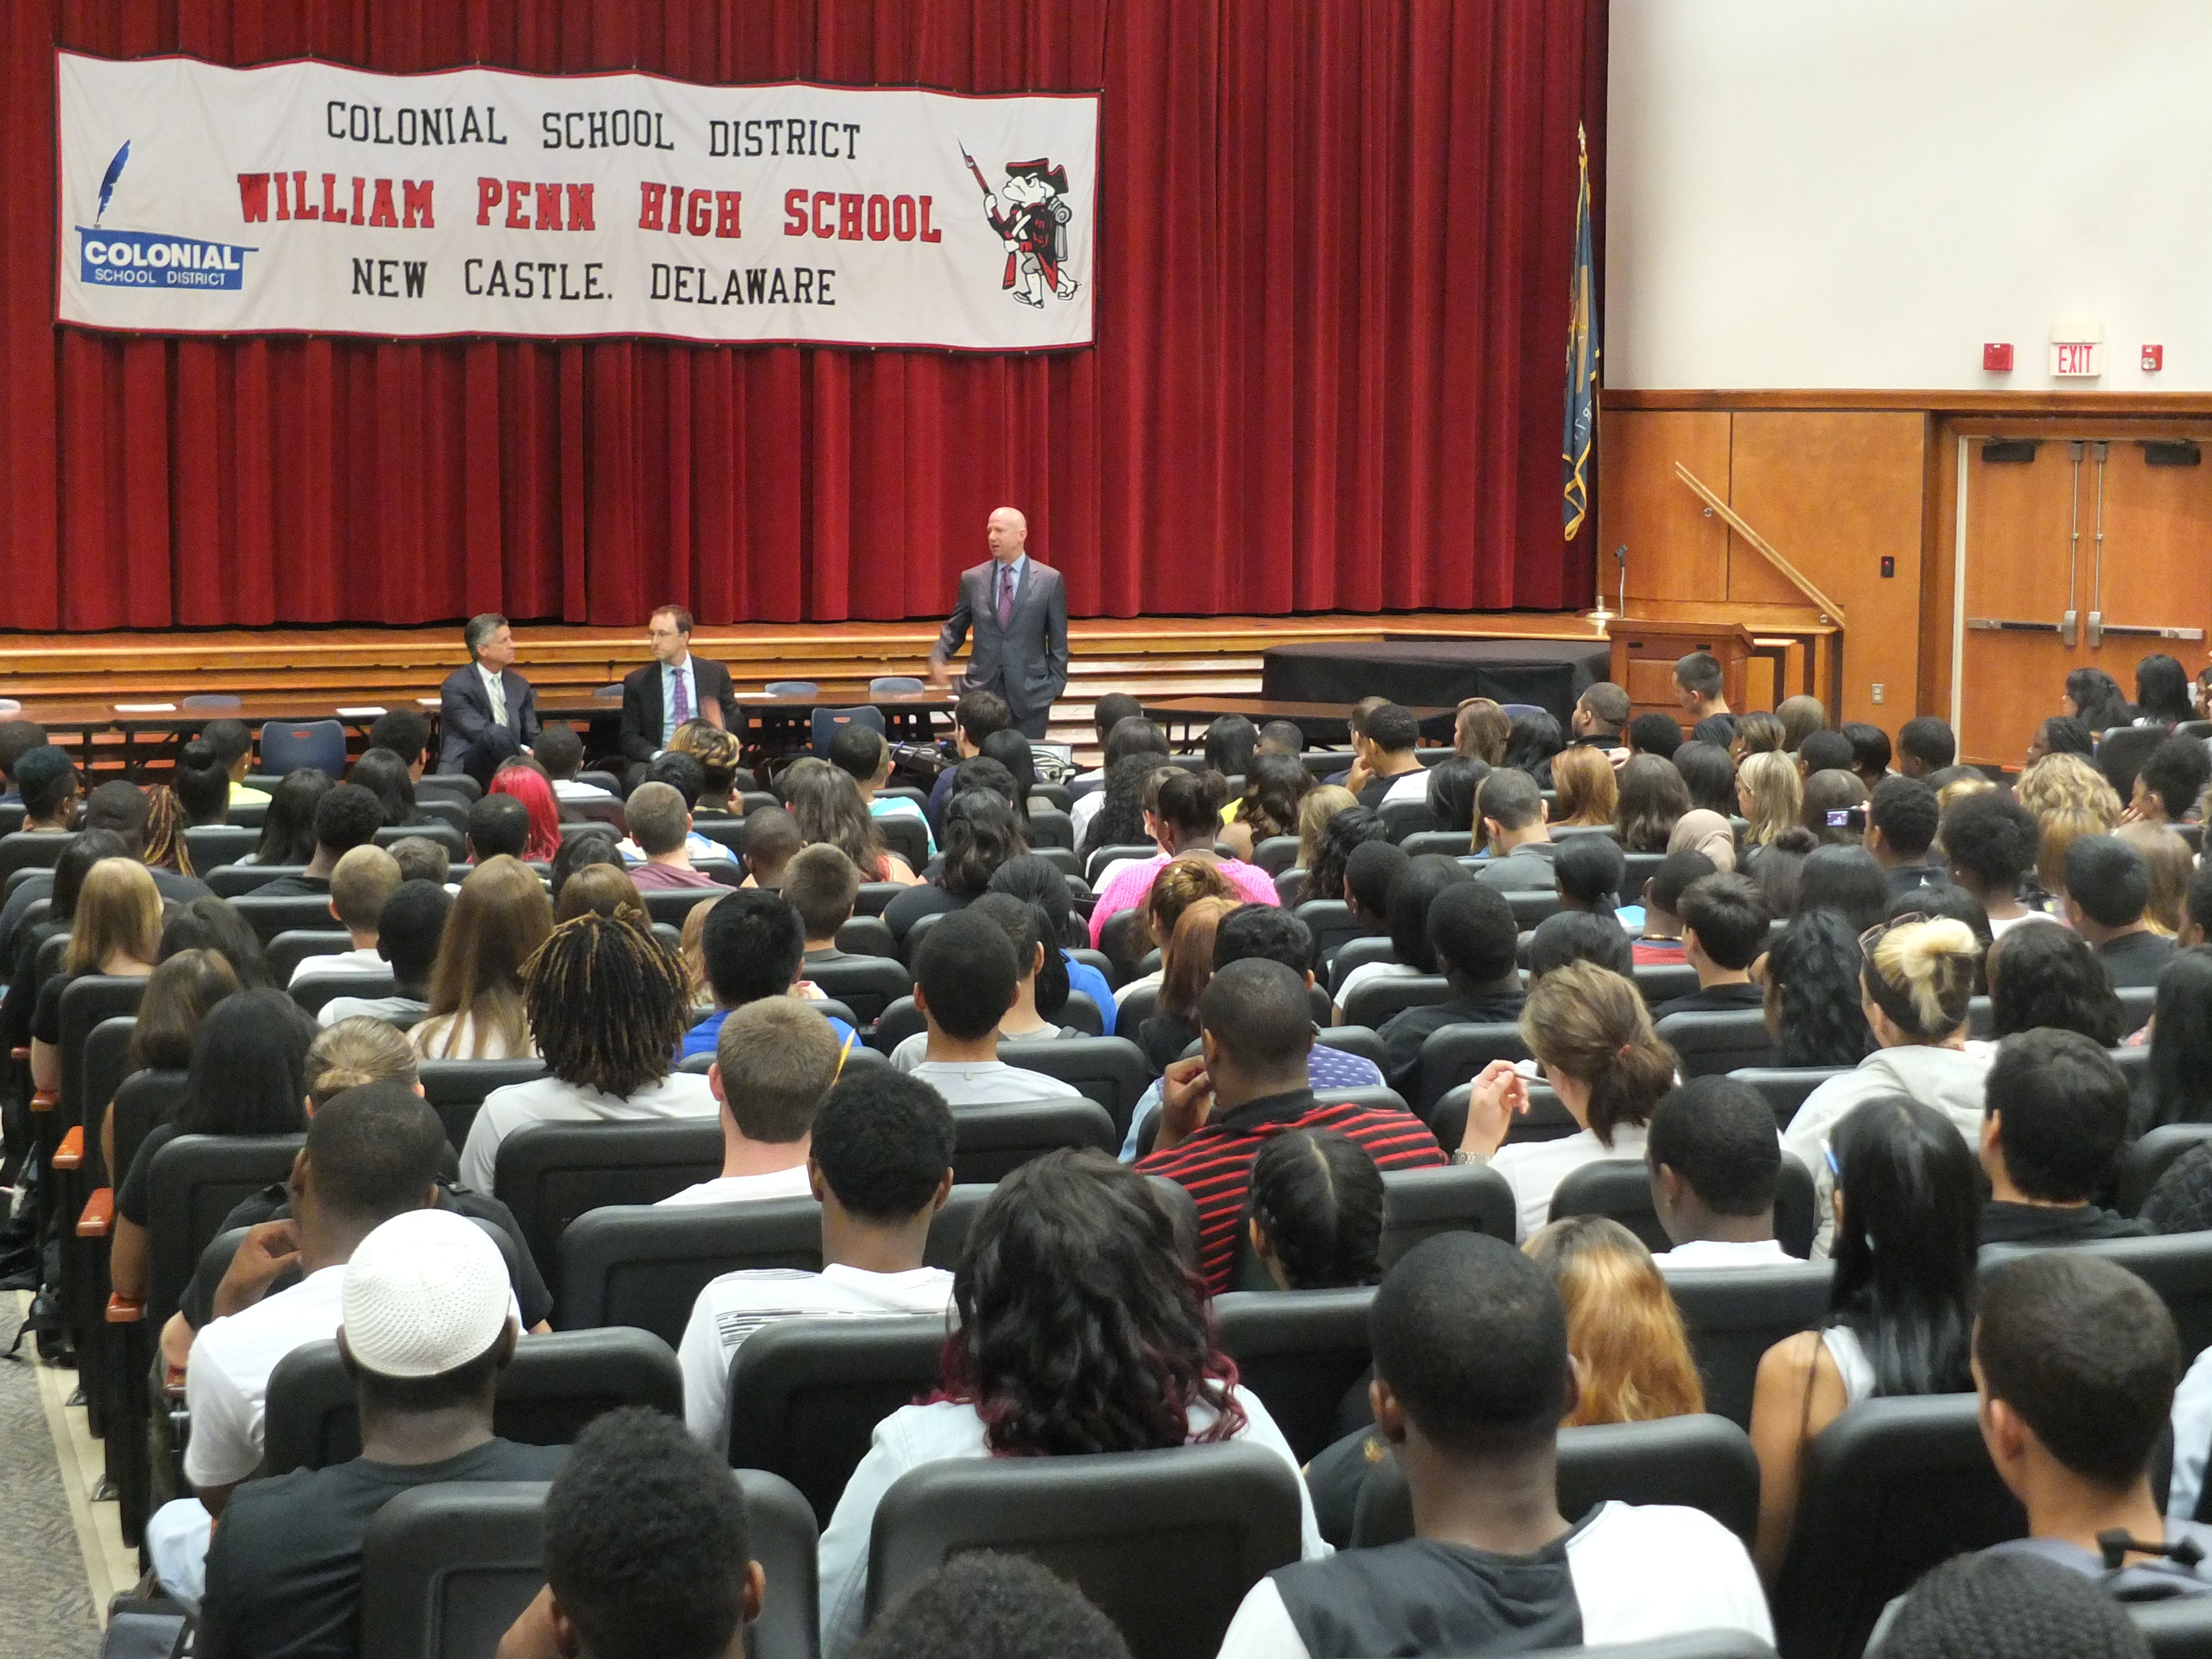 governor launches senior class tour to help students transition to governor markell address the senior class of william penn high school